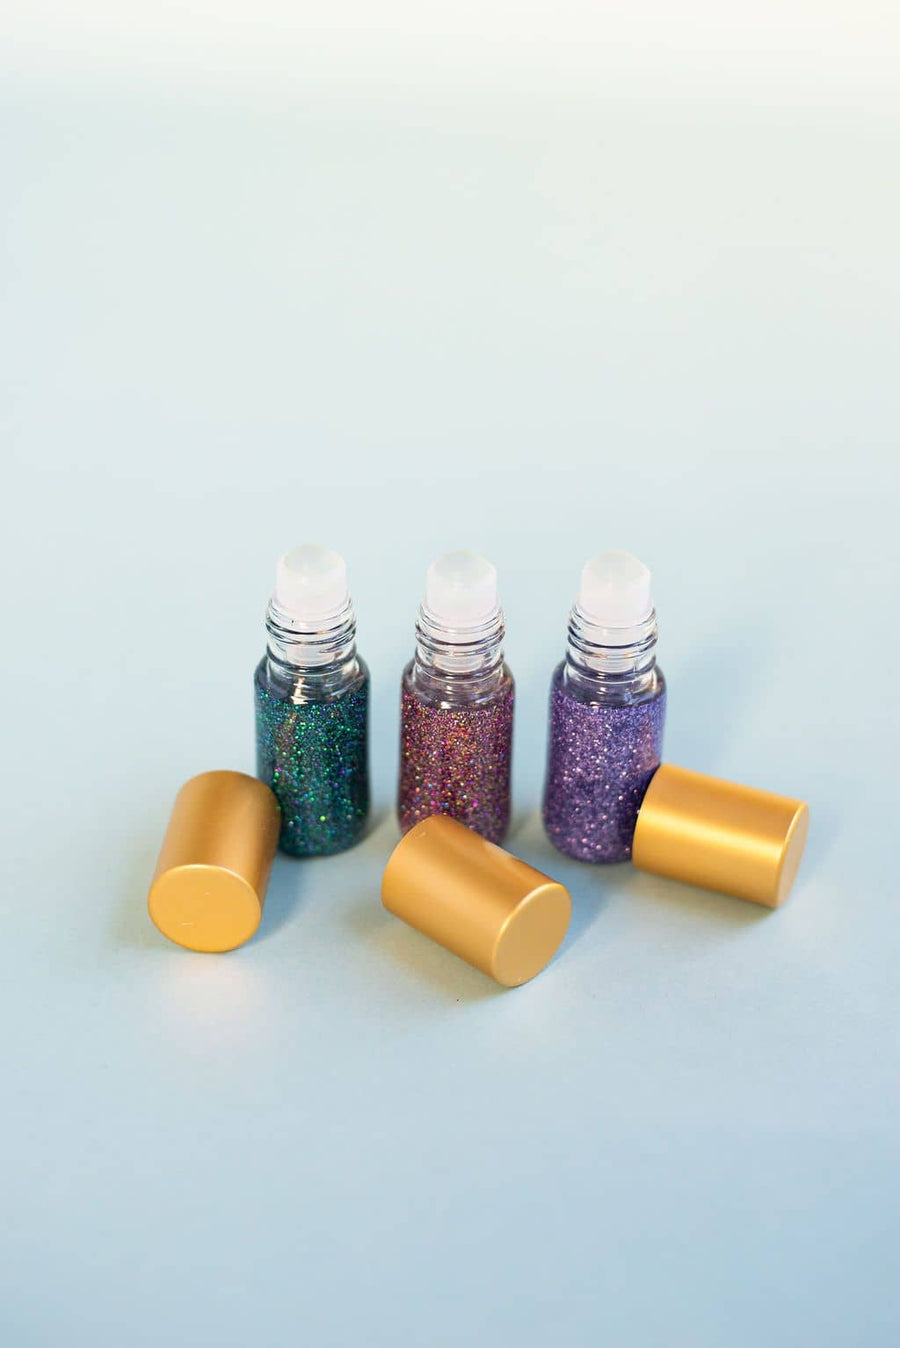 Self Care Twinkle Trio Roller Bottles